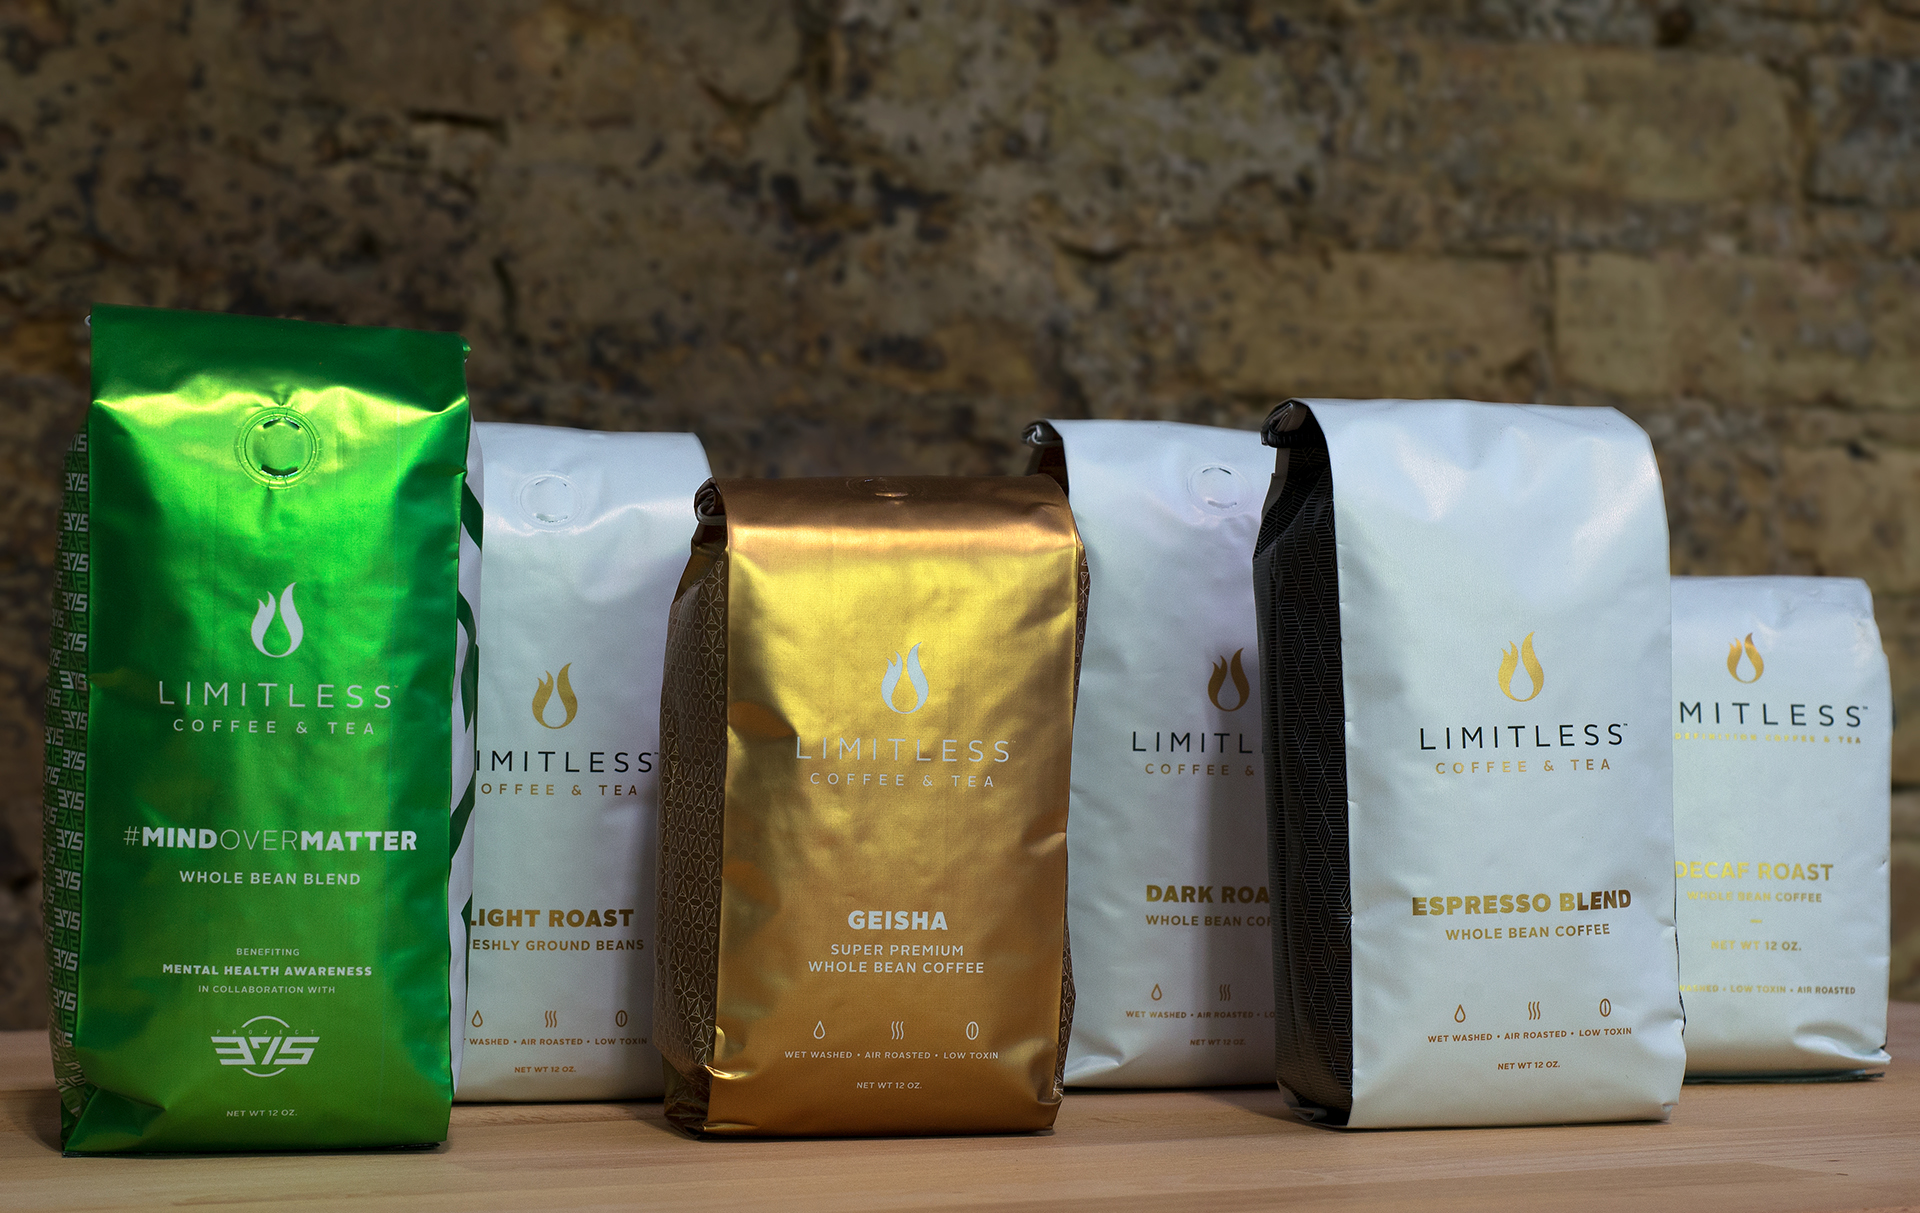 Limitless Packaging